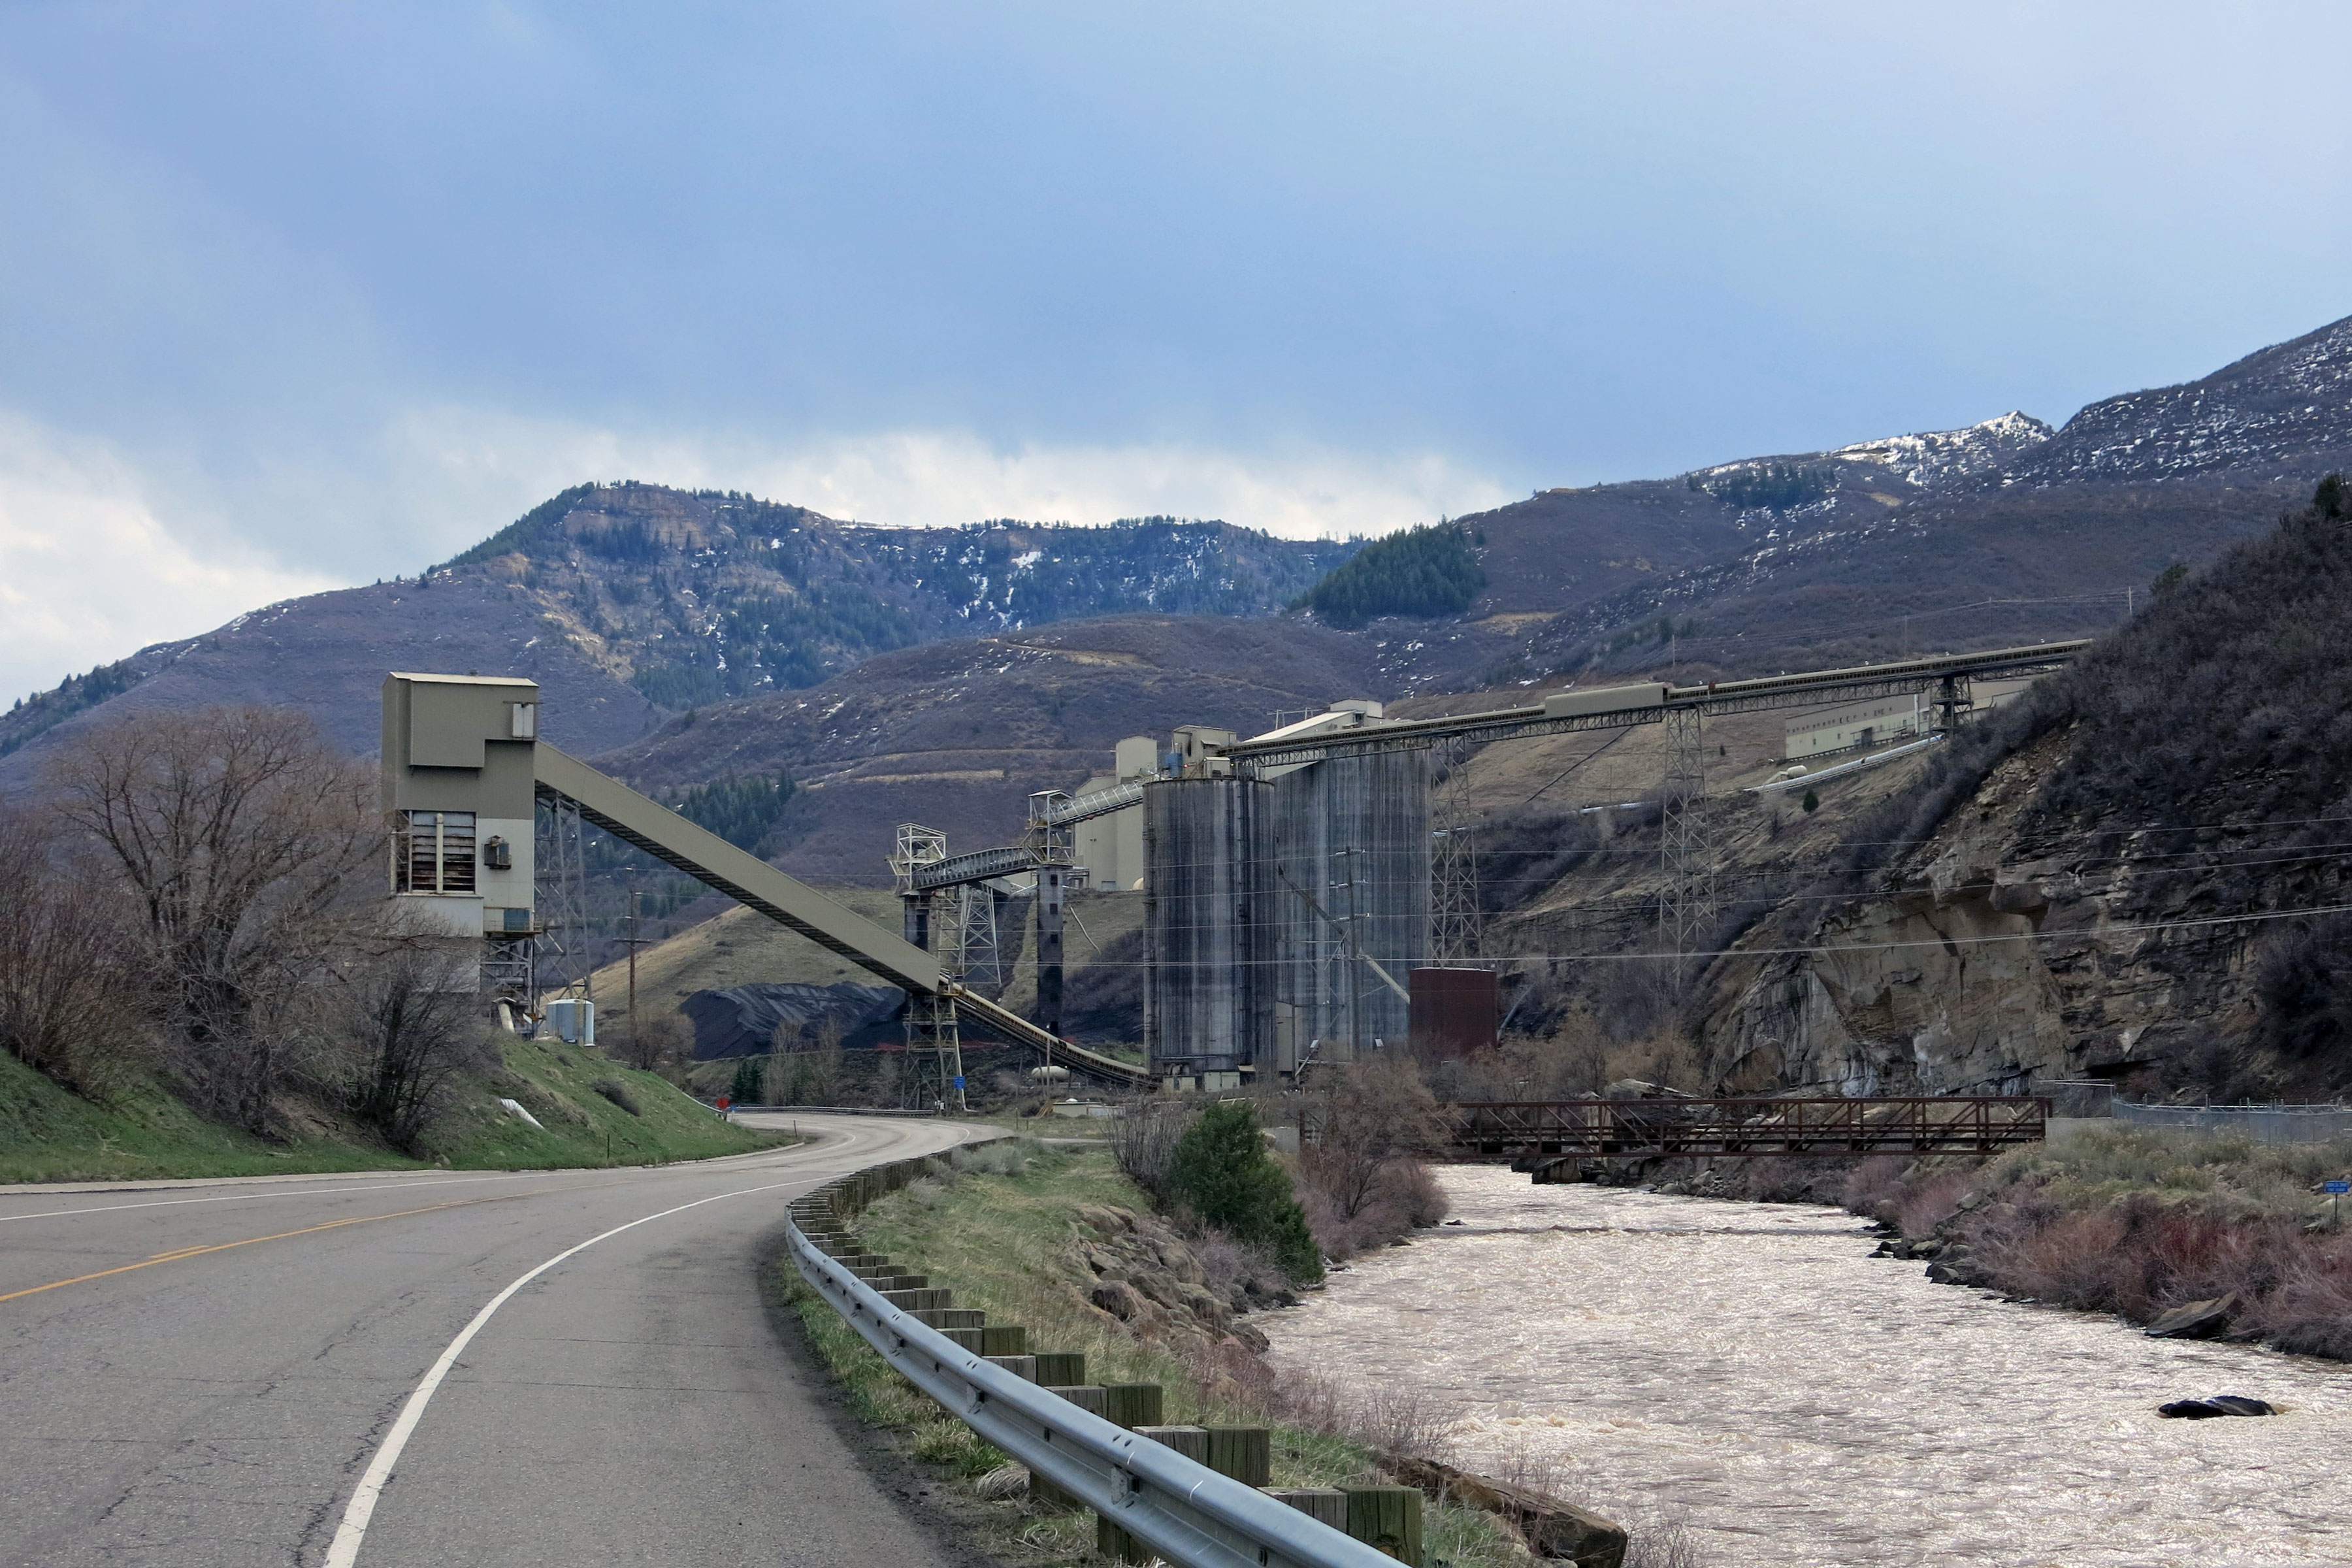 West Elk Mine, owned by Arch Coal, is the last operating mine in the North Fork Valley. Bowie #2 and Elk Creek mines have closed.